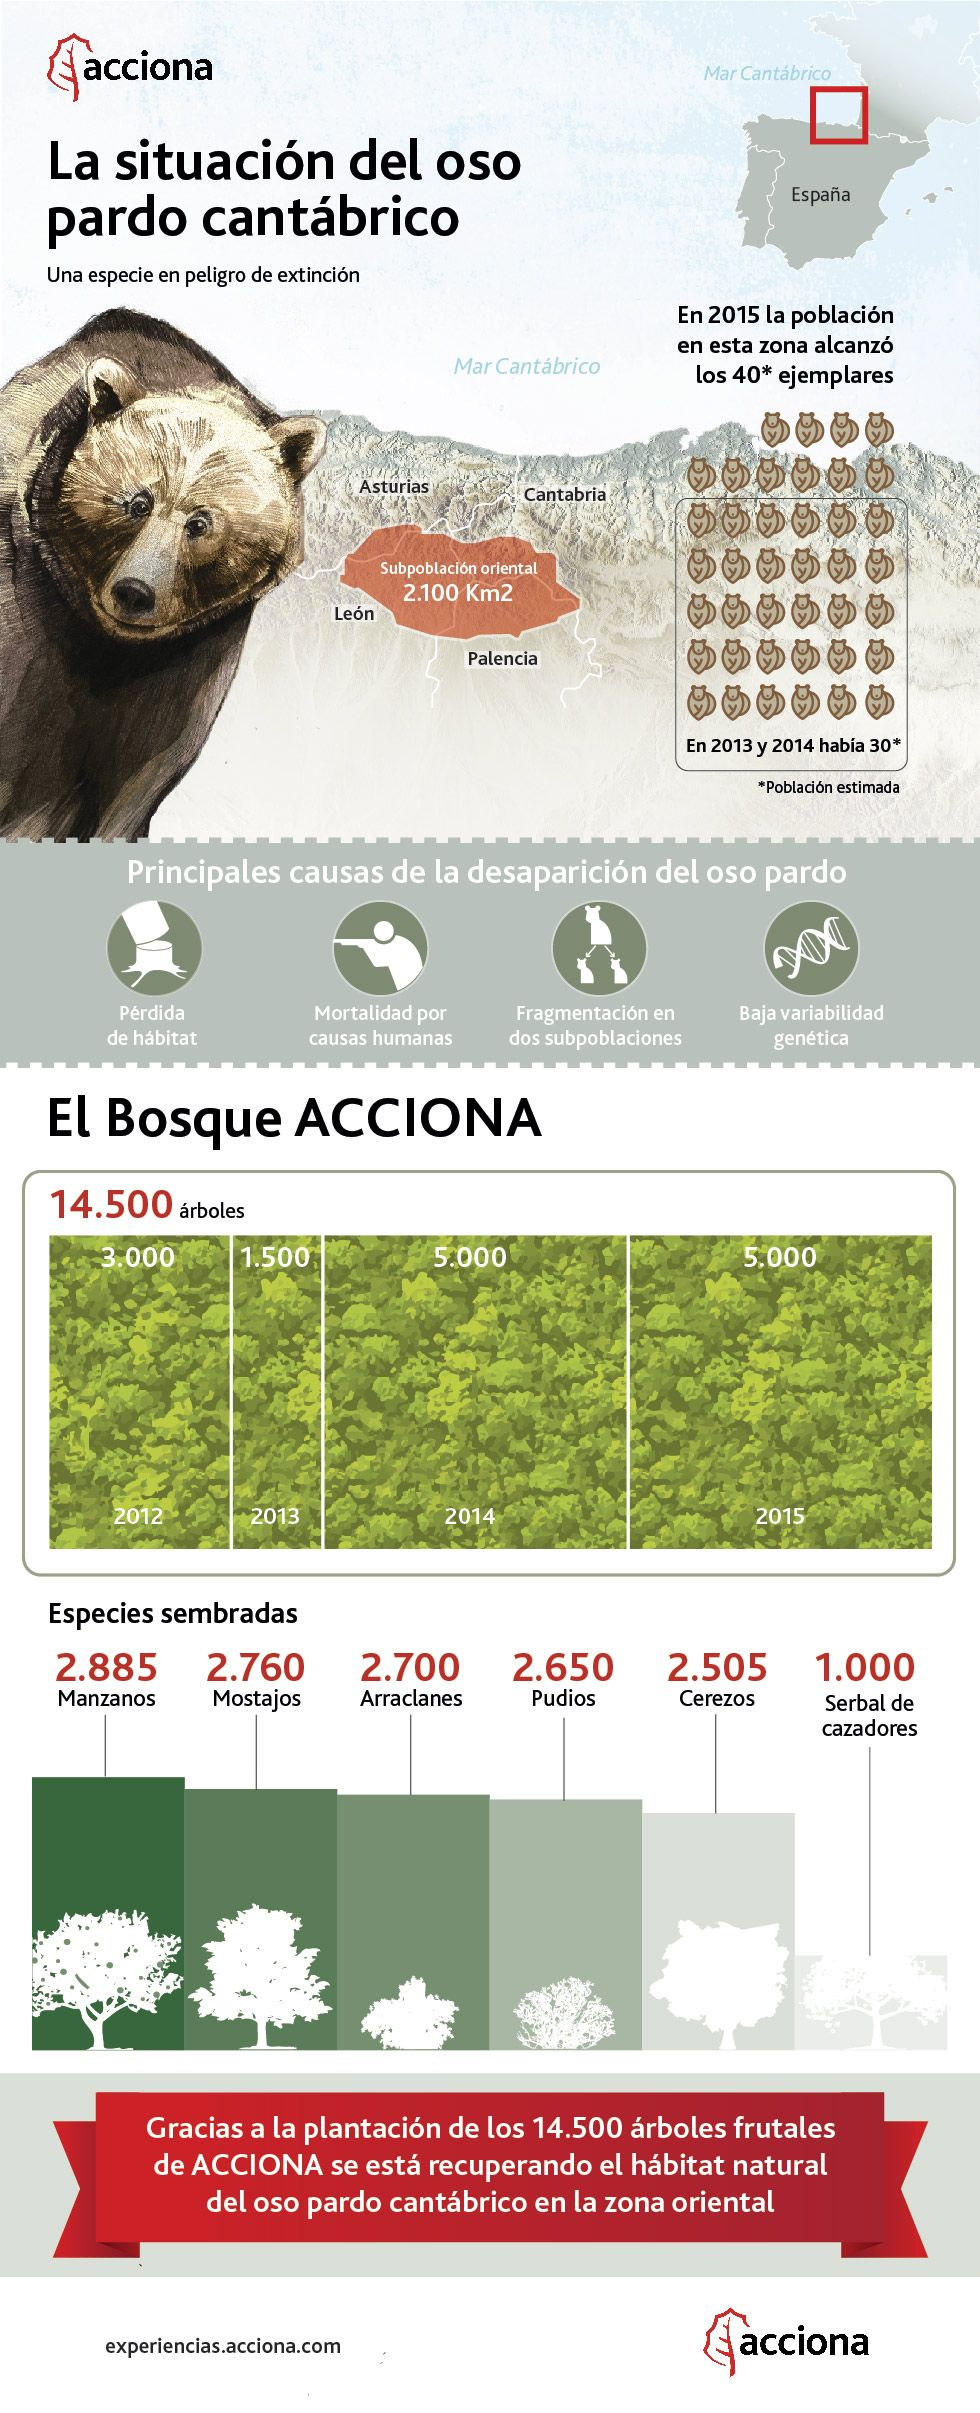 The situation of the brown bear in Spain. Infographics